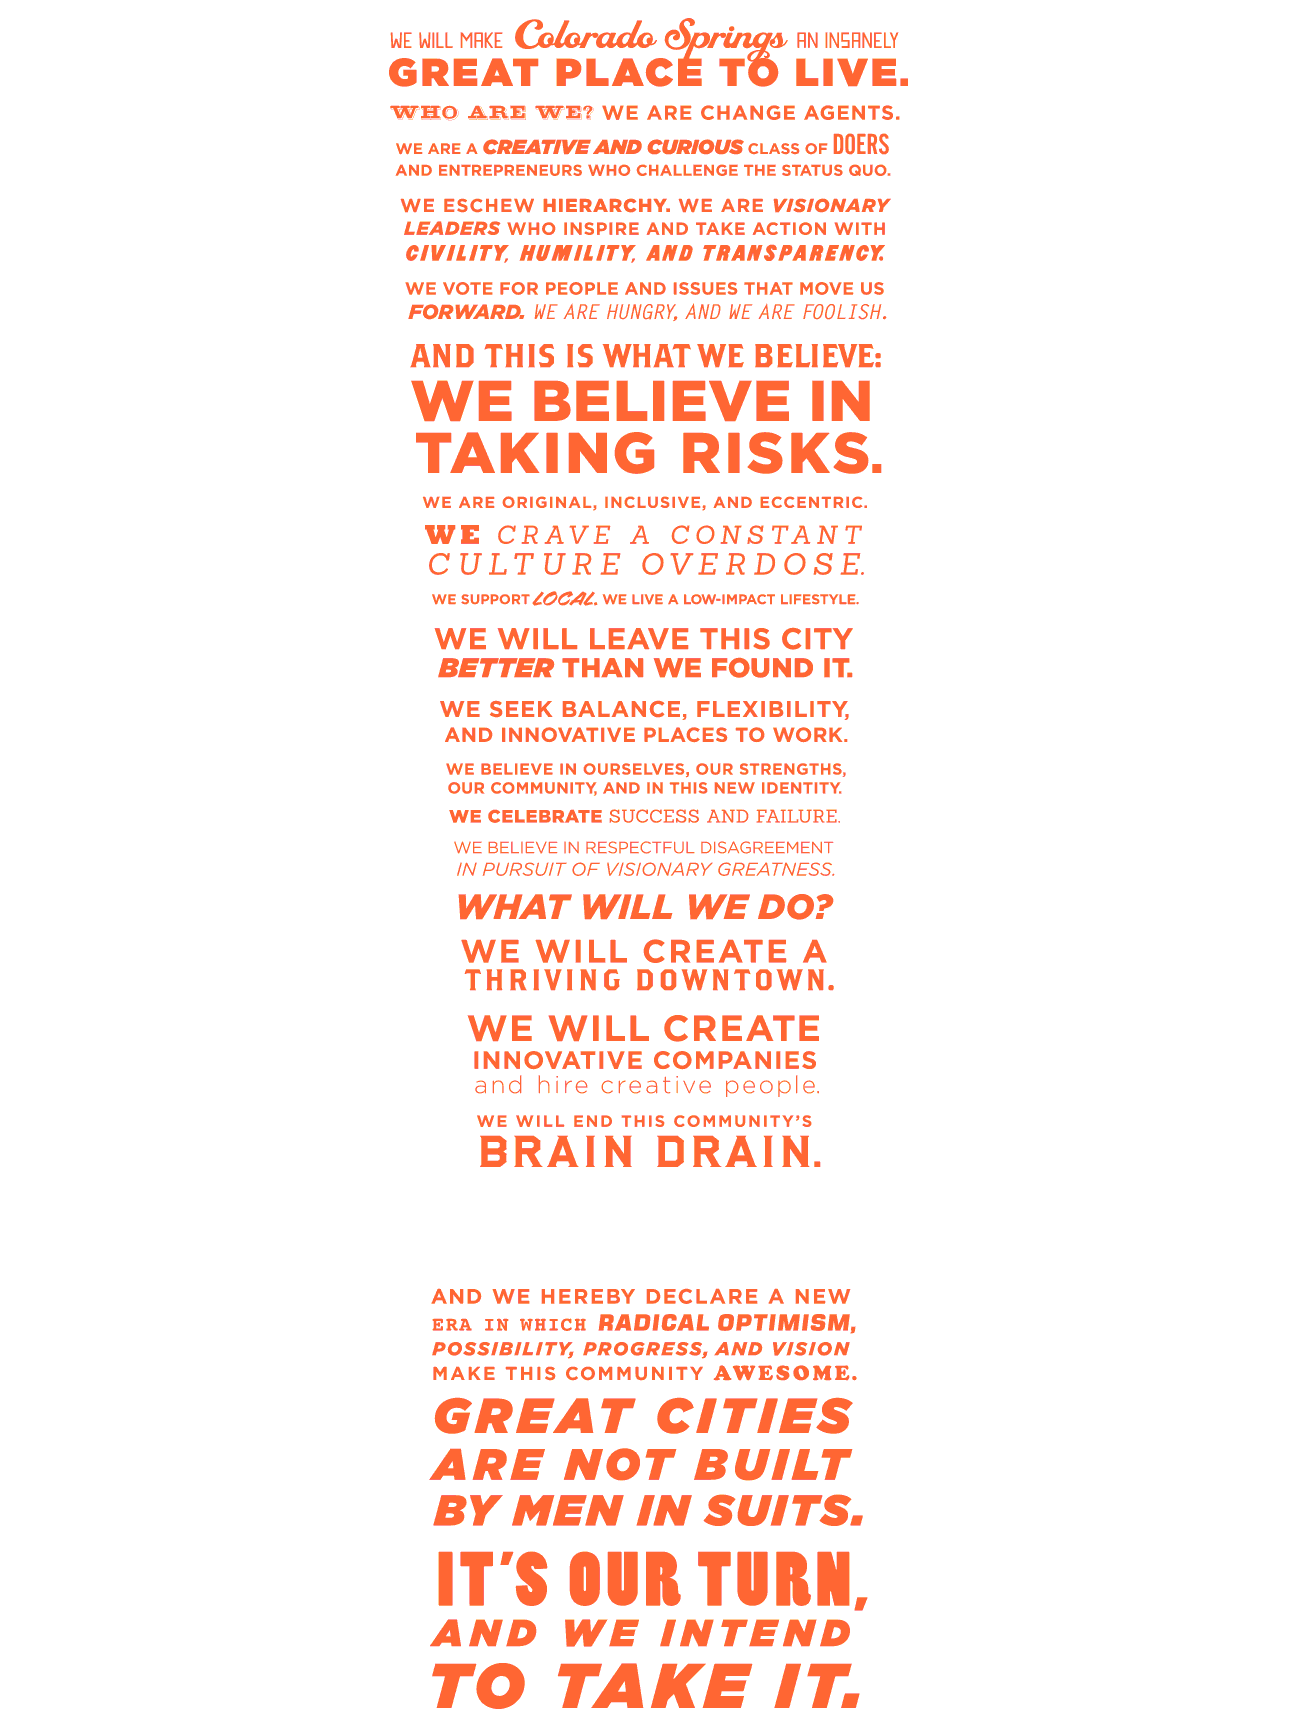 COLORADO SPRINGS MANIFESTO POSTER